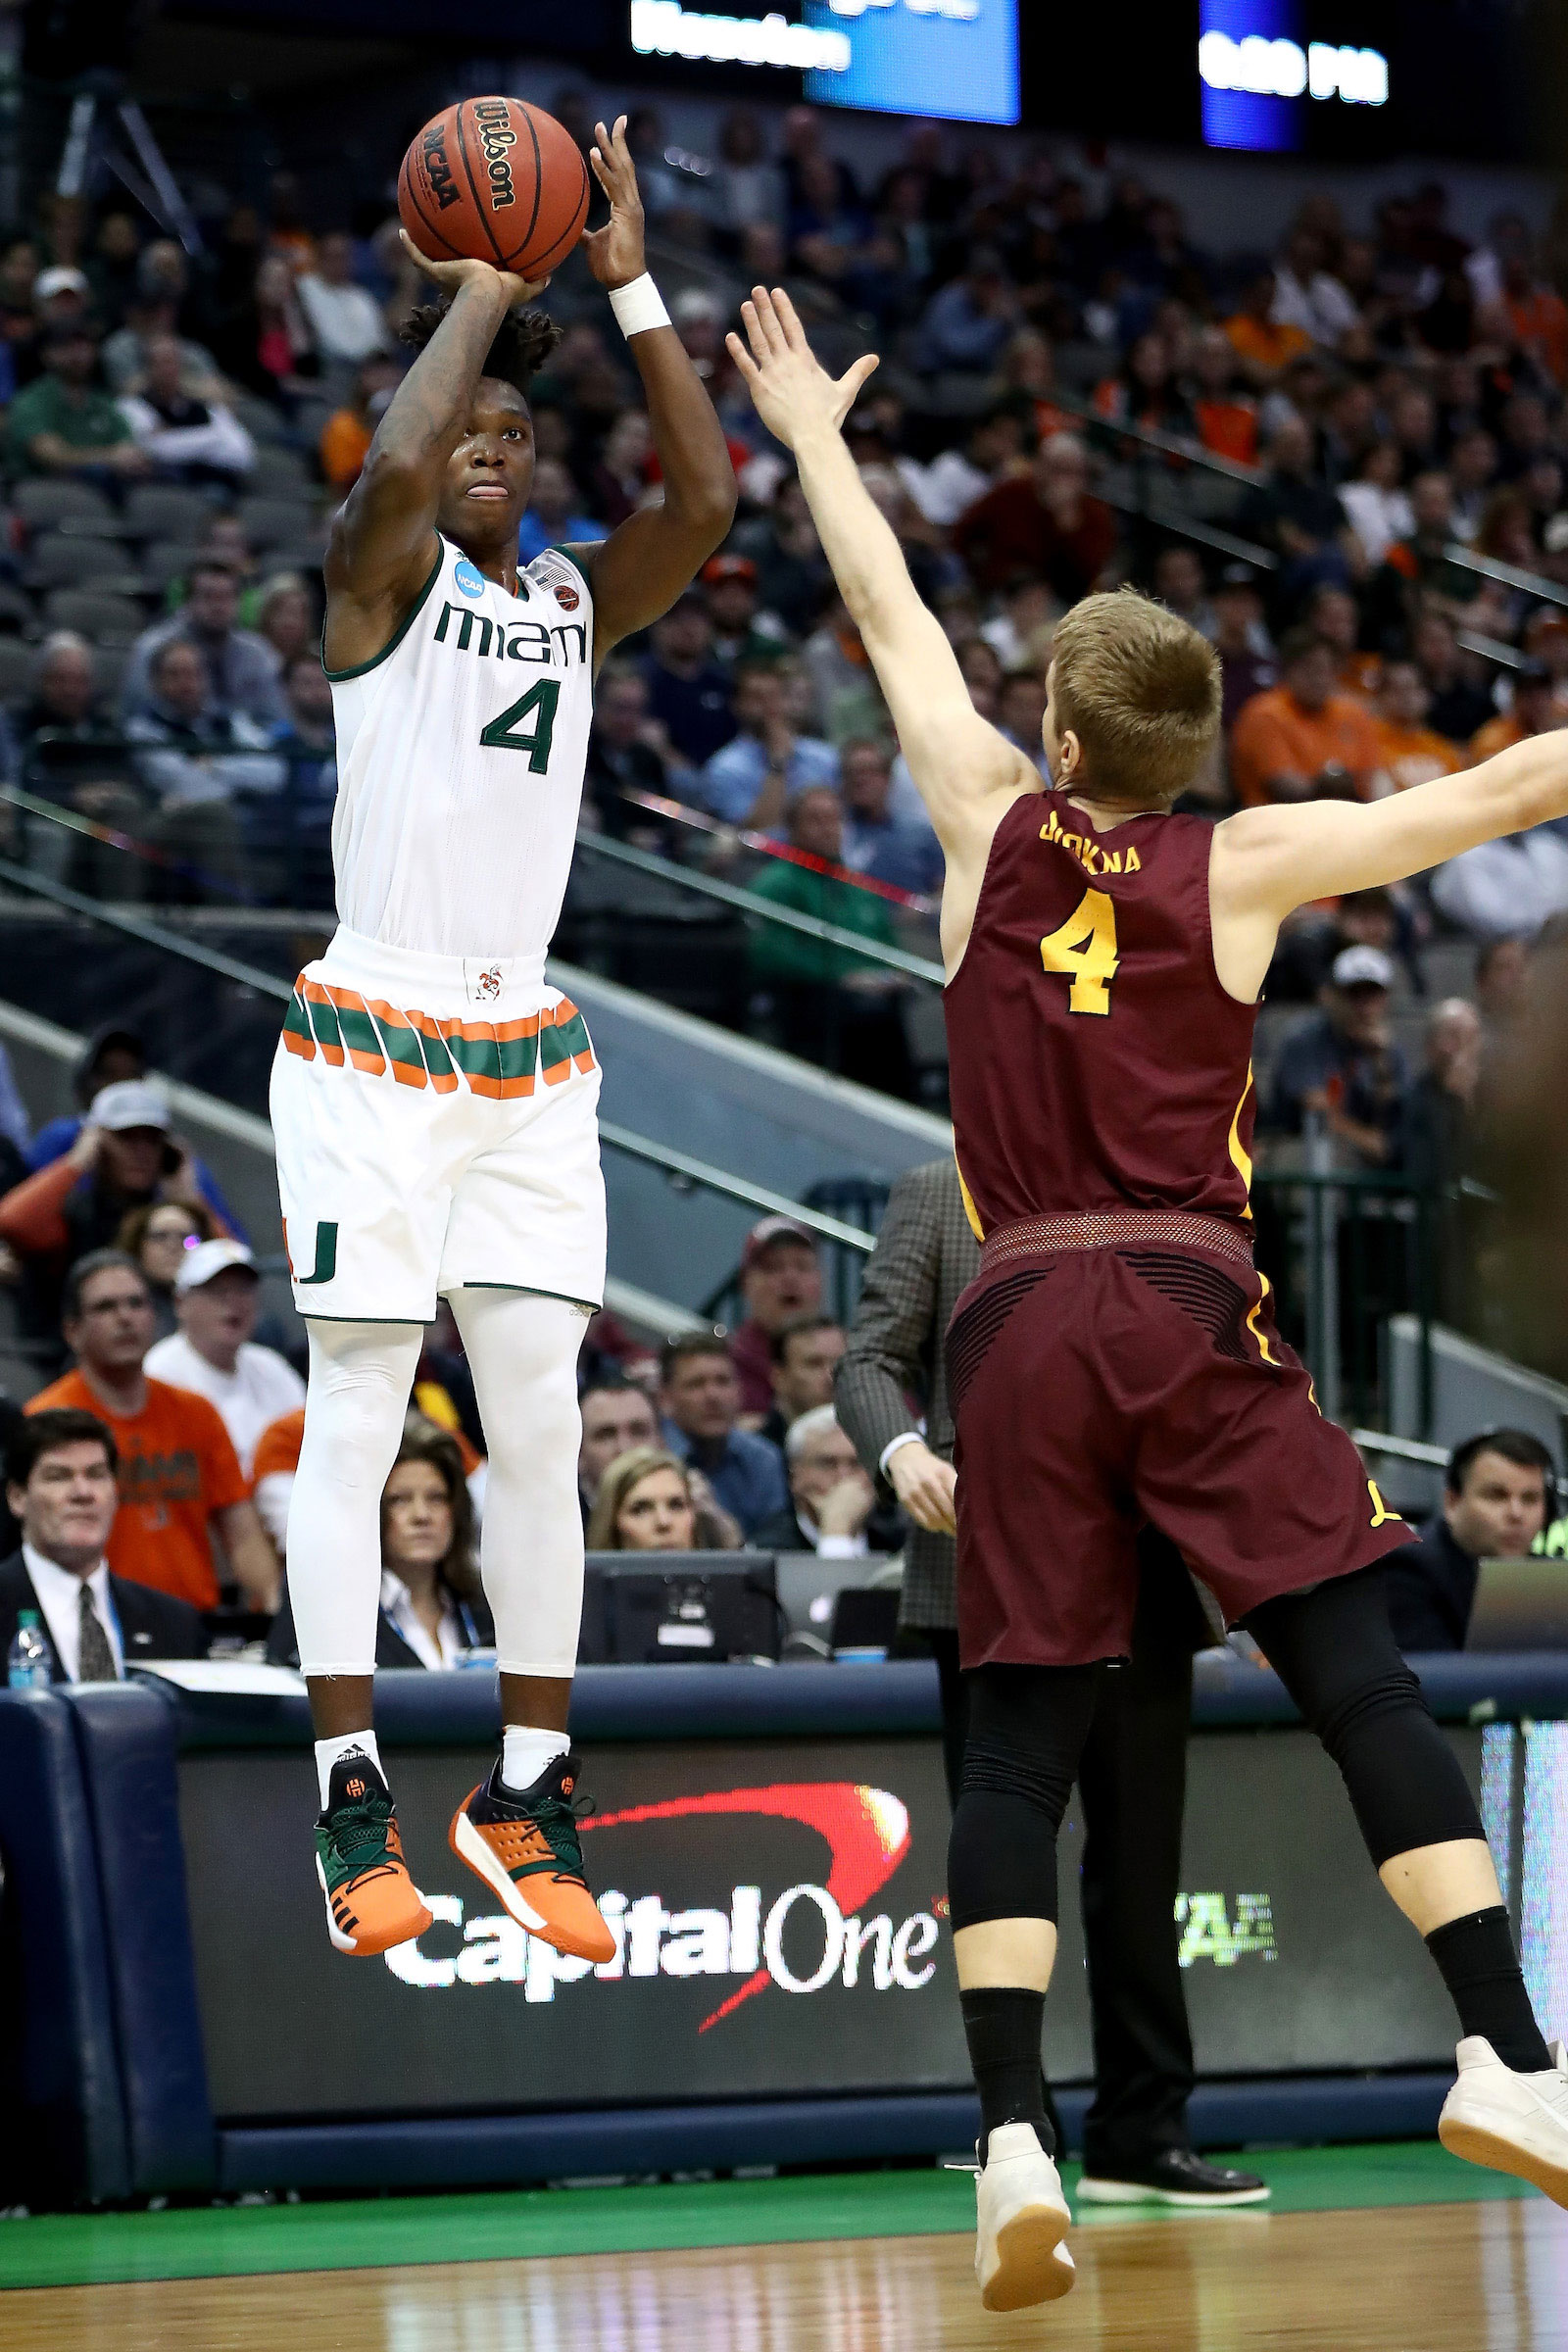 Lonnie Walker IV #4 of the Miami Hurricanes shots over Bruno Skokna #4 of the Loyola Ramblers in the first half in the first round of the 2018 NCAA Men's Basketball Tournament at American Airlines Center on March 15, 2018 in Dallas, Texas.